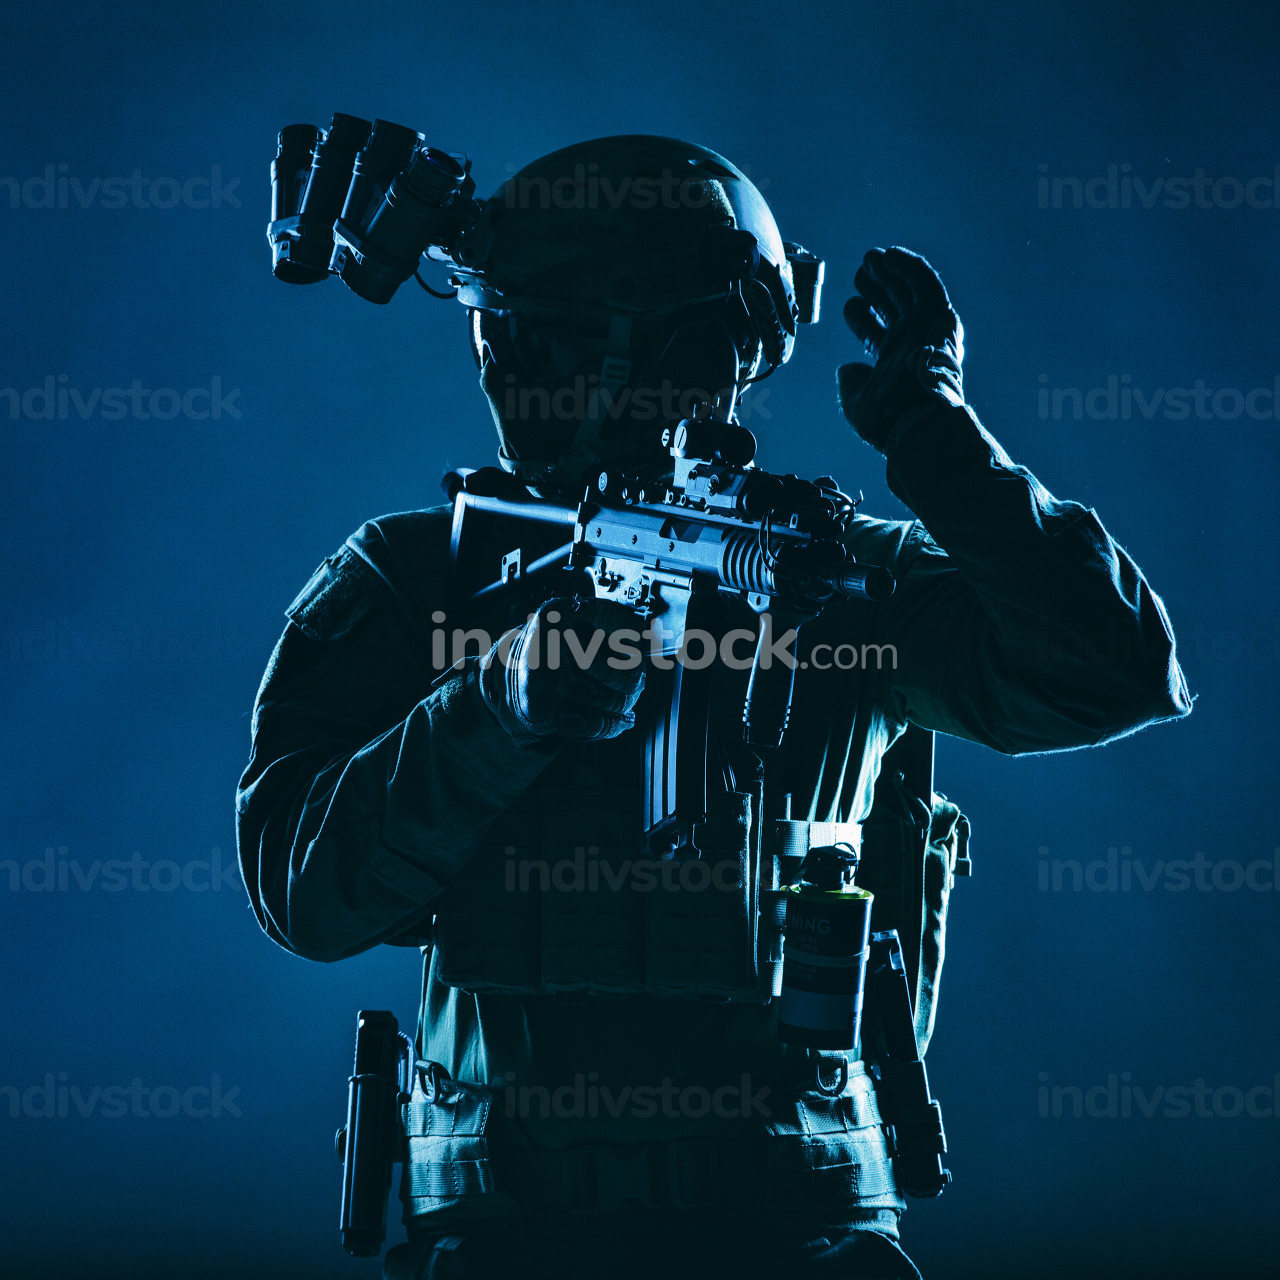 Special operations soldier, SWAT team fighter in mask and glasses, equipped night vision device, armed short barrel service rifle, looking back and showing freeze hand signal, low key studio shoot